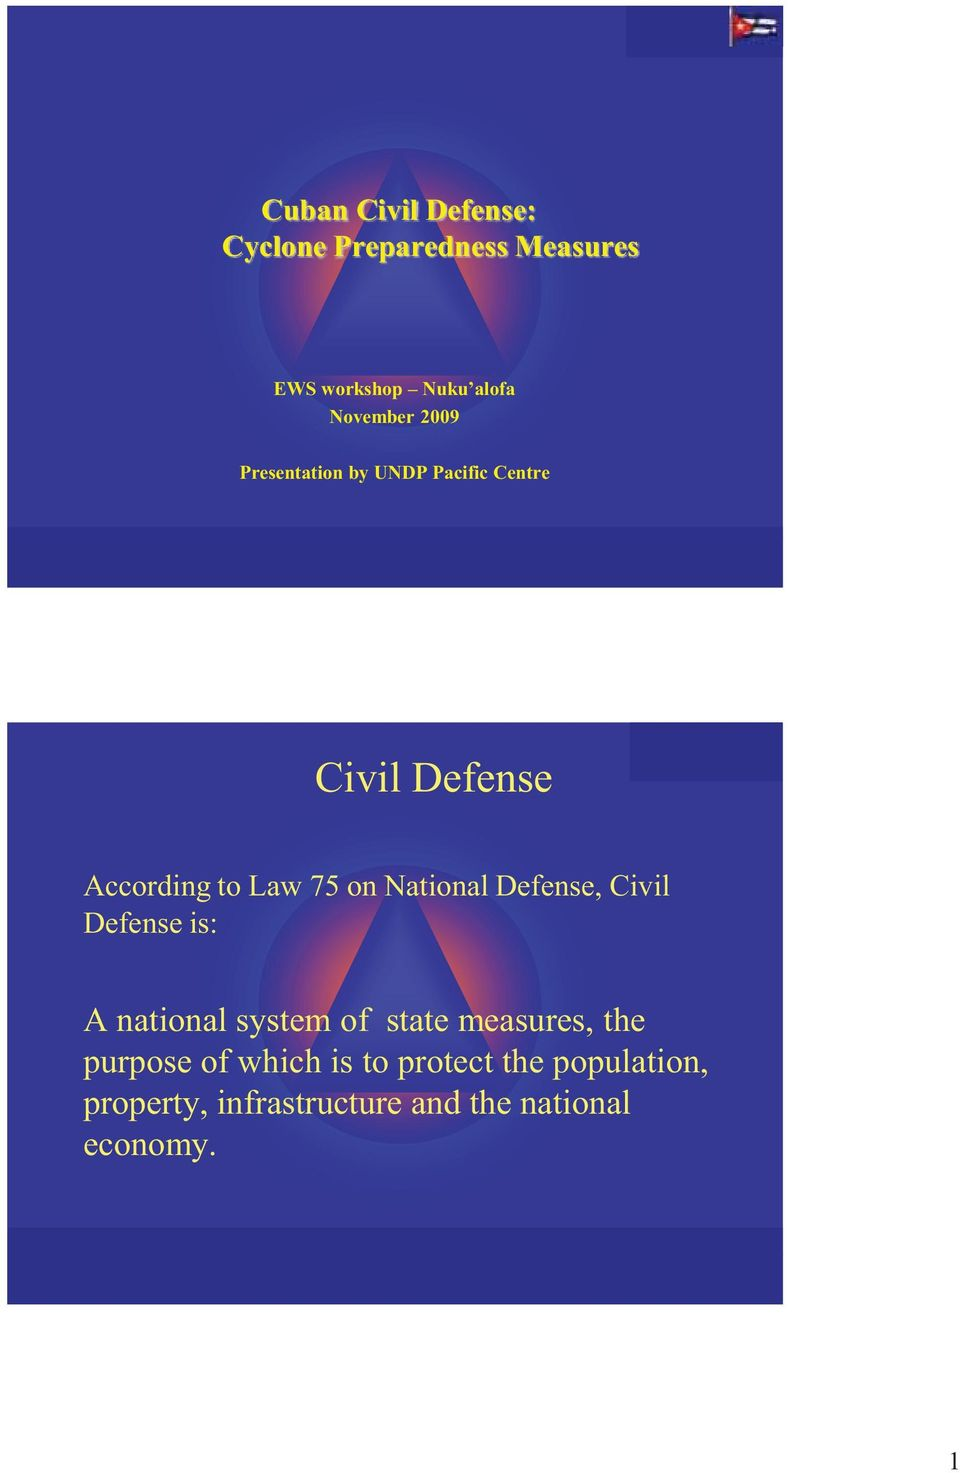 National Defense, Civil Defense is: A national system of state measures, the purpose